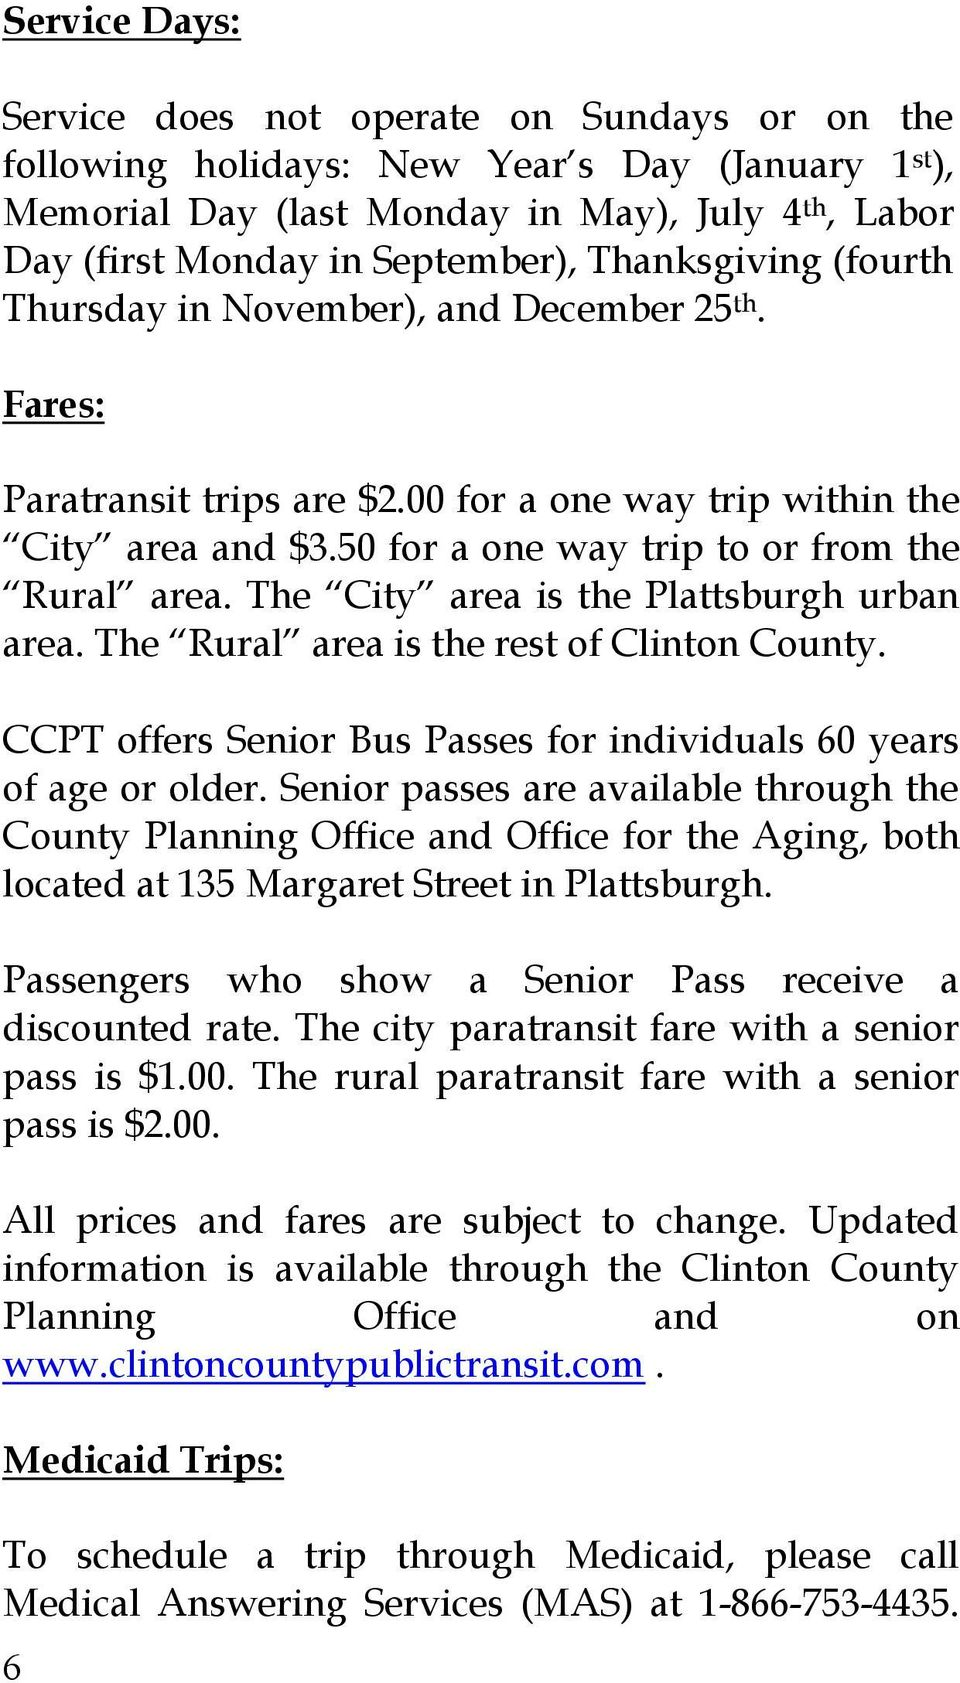 The City area is the Plattsburgh urban area. The Rural area is the rest of Clinton County. CCPT offers Senior Bus Passes for individuals 60 years of age or older.